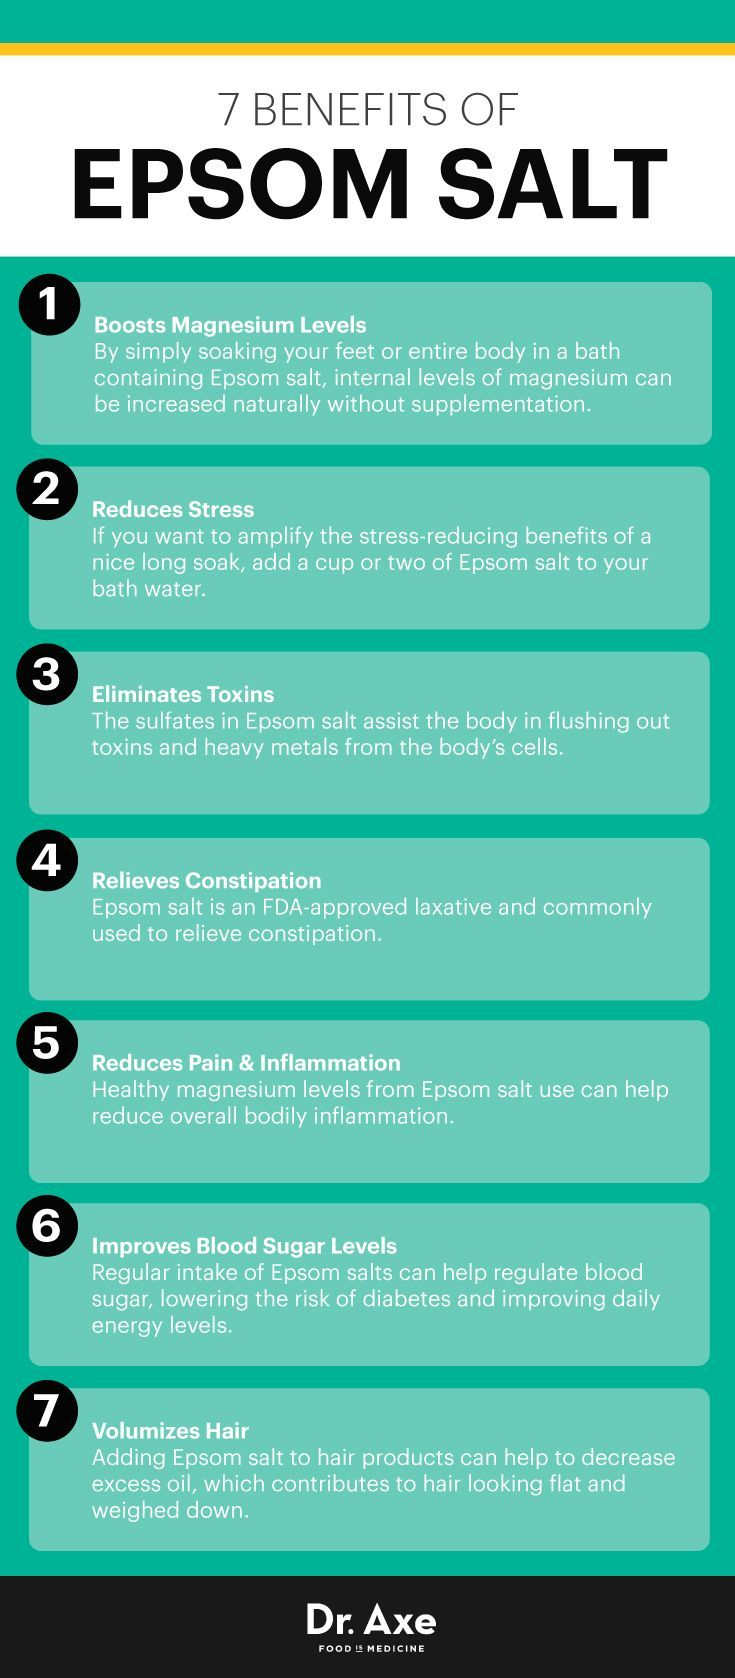 Epsom salt benefits - Dr. Axe http://www.draxe.com #health #holistic #natural…